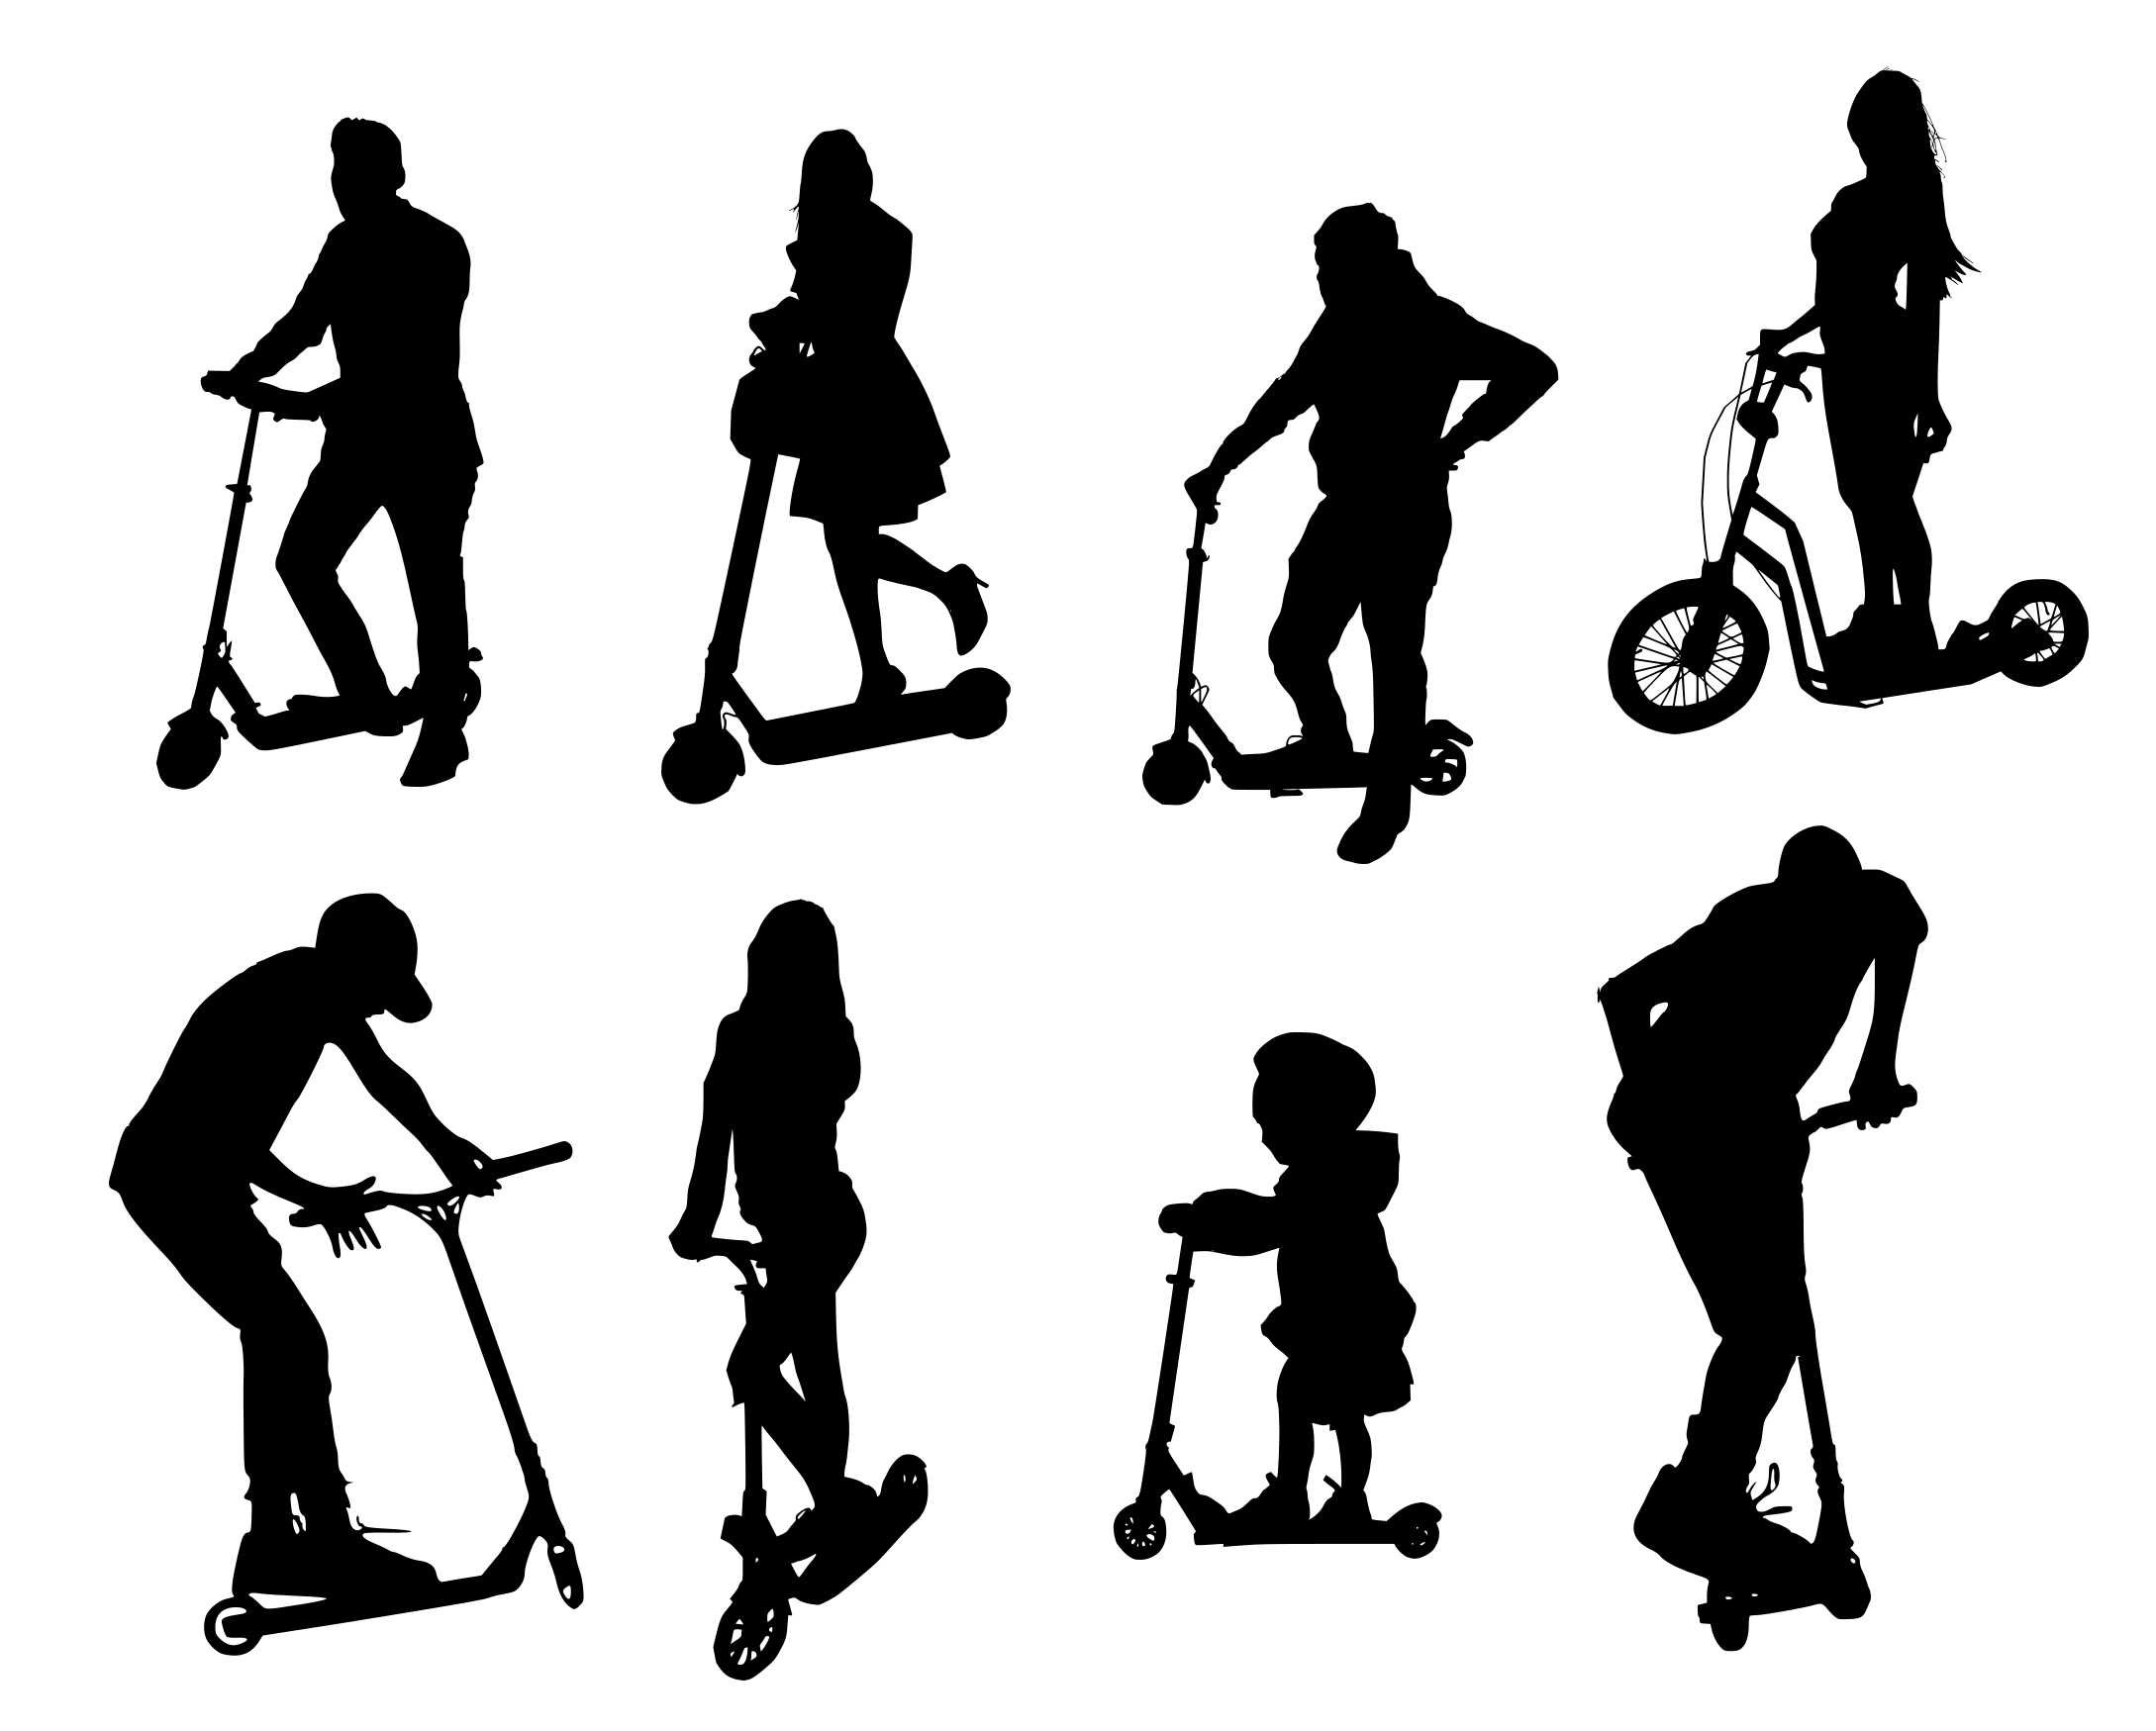 8-scooter-rider-silhouette-cover.jpg